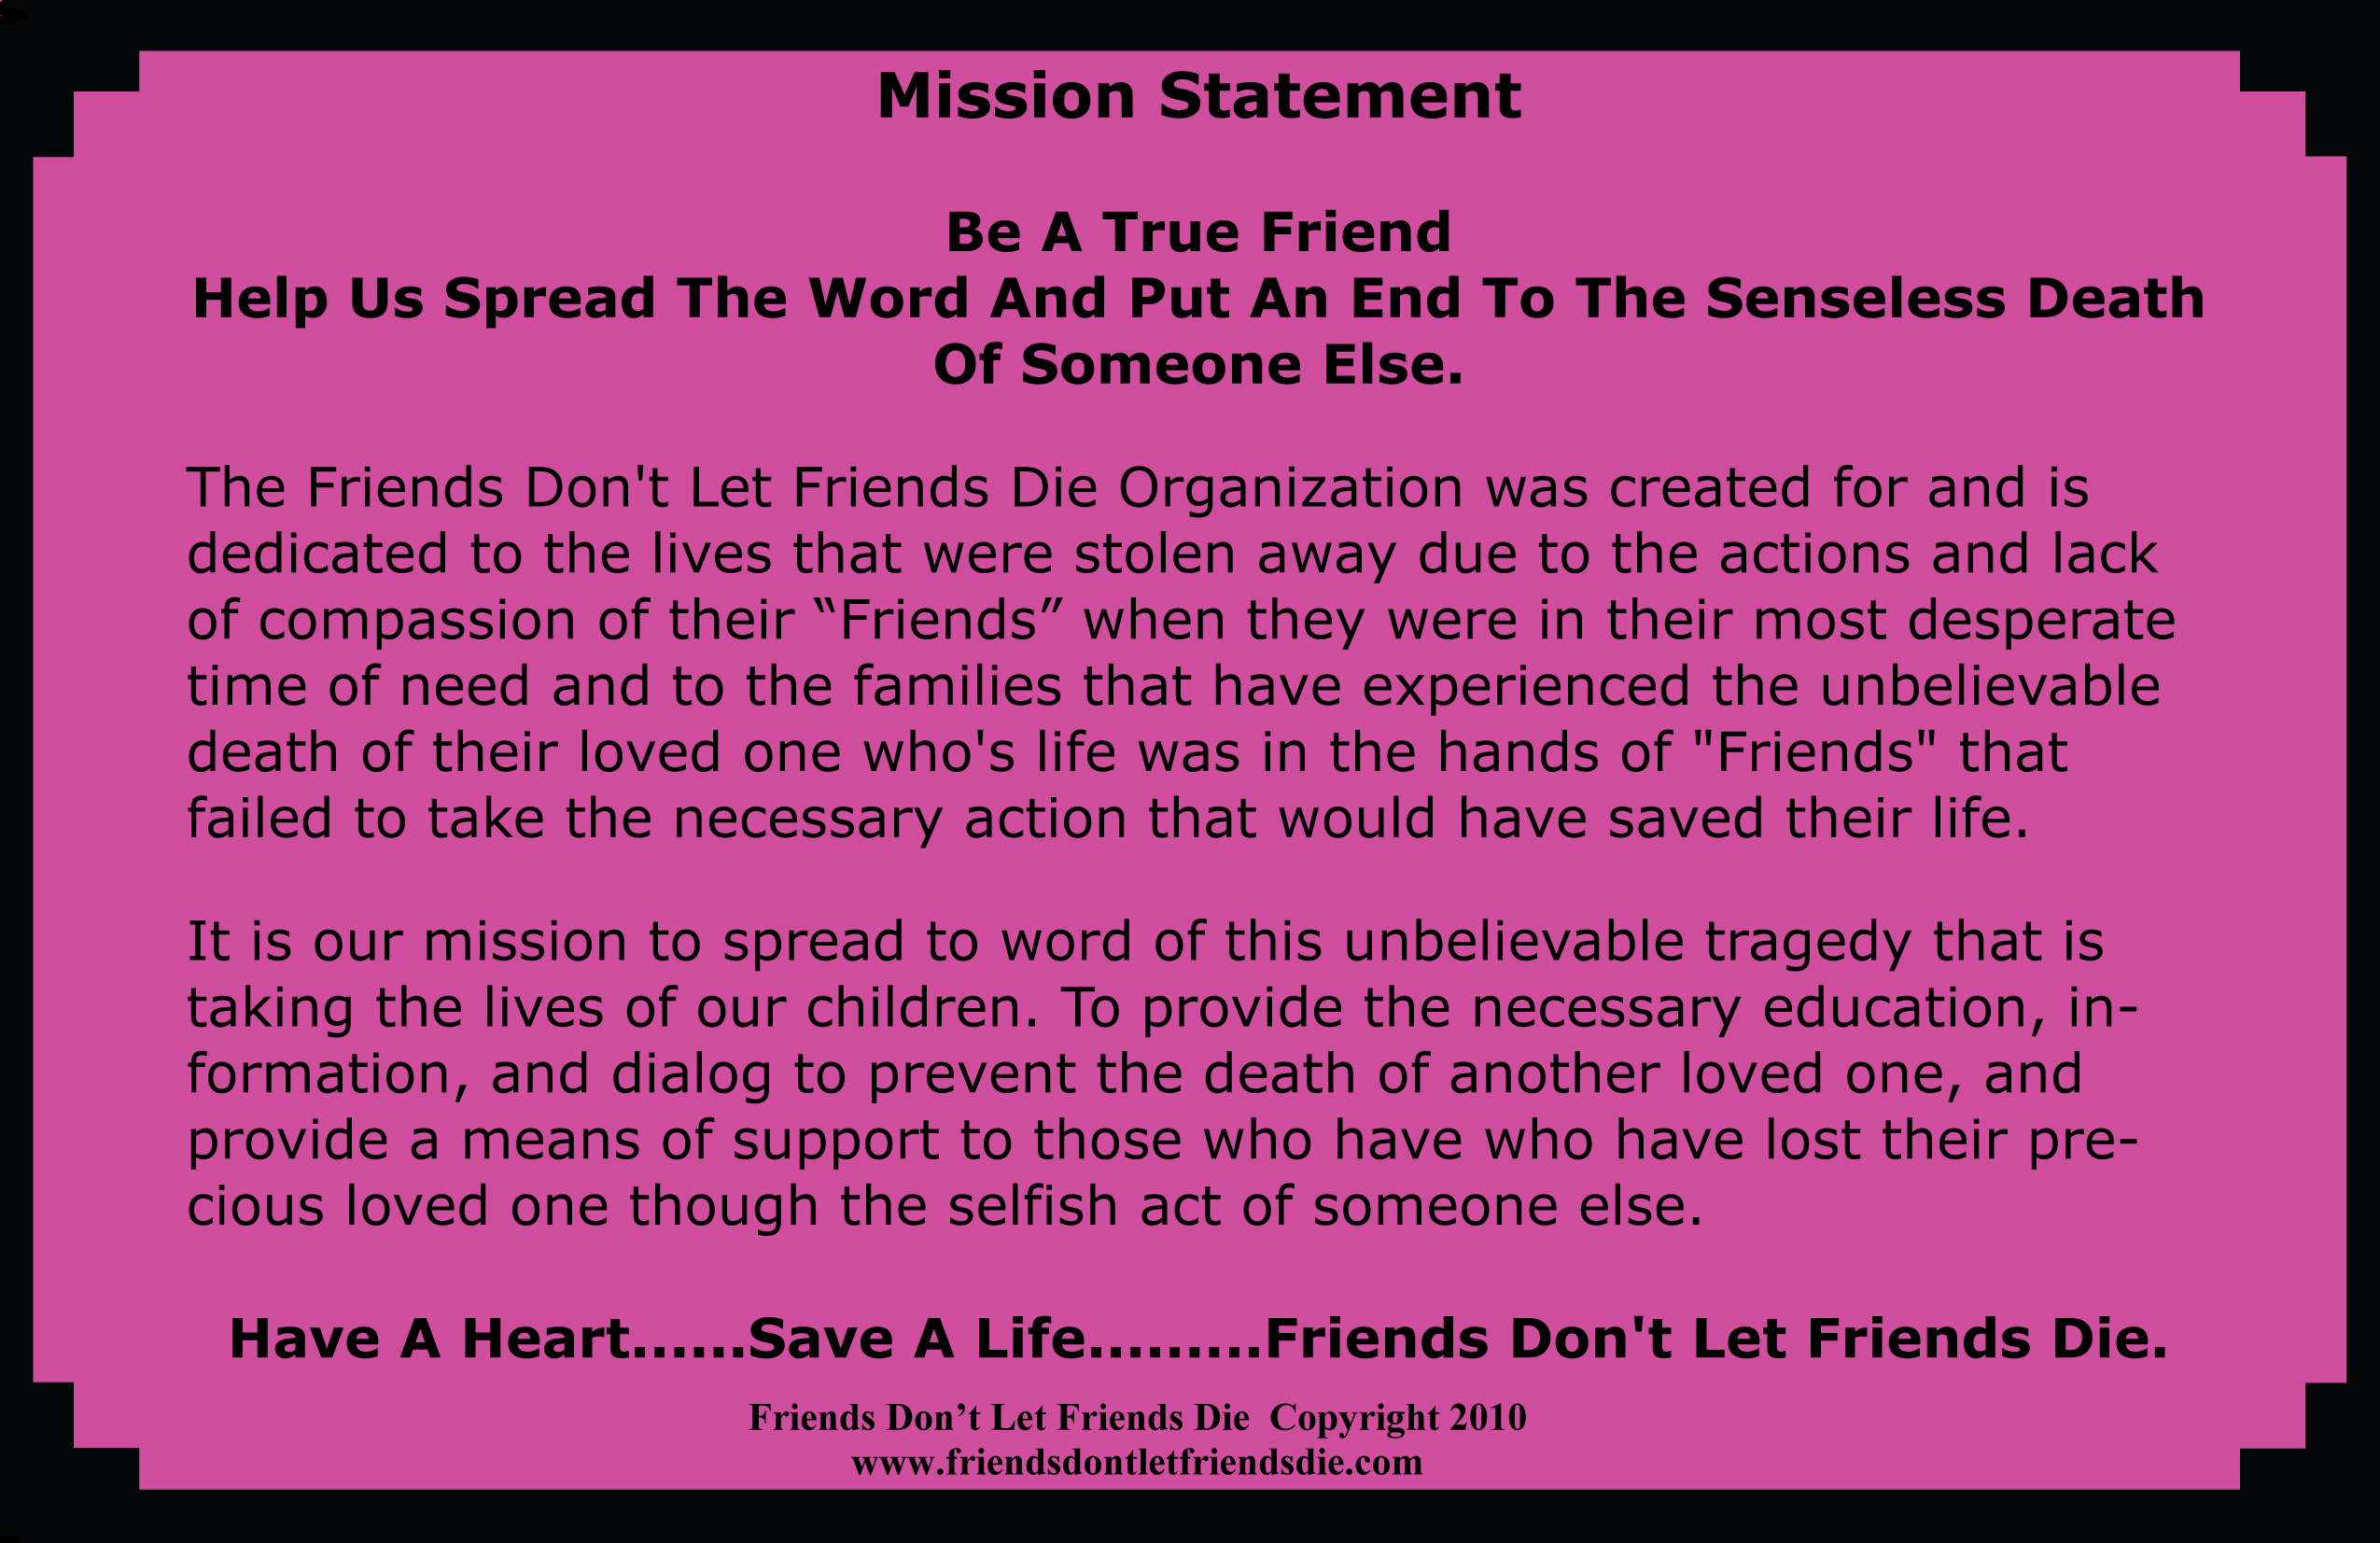 mission statement The friends don't let friends die organization was created for and is dedicated to the lives that were stolen away due to the actions and lack of compassion of the friends when they were in their most desperate time of need and to the families that have experienced the unbelievable death of ther loved one who's life was in the hands of friends that failed to take the necessary action that would have saved their life. It is our mission to spread the word of this unbelievable tragedy that is taking the lives of our children. The Provide the necessary education, information, and dialog to prevent the death of another loved one, and provide a means of support to those who have lost their precious loved one through the selfish act of smeone else. Have a heart save a life friends don't let friends die